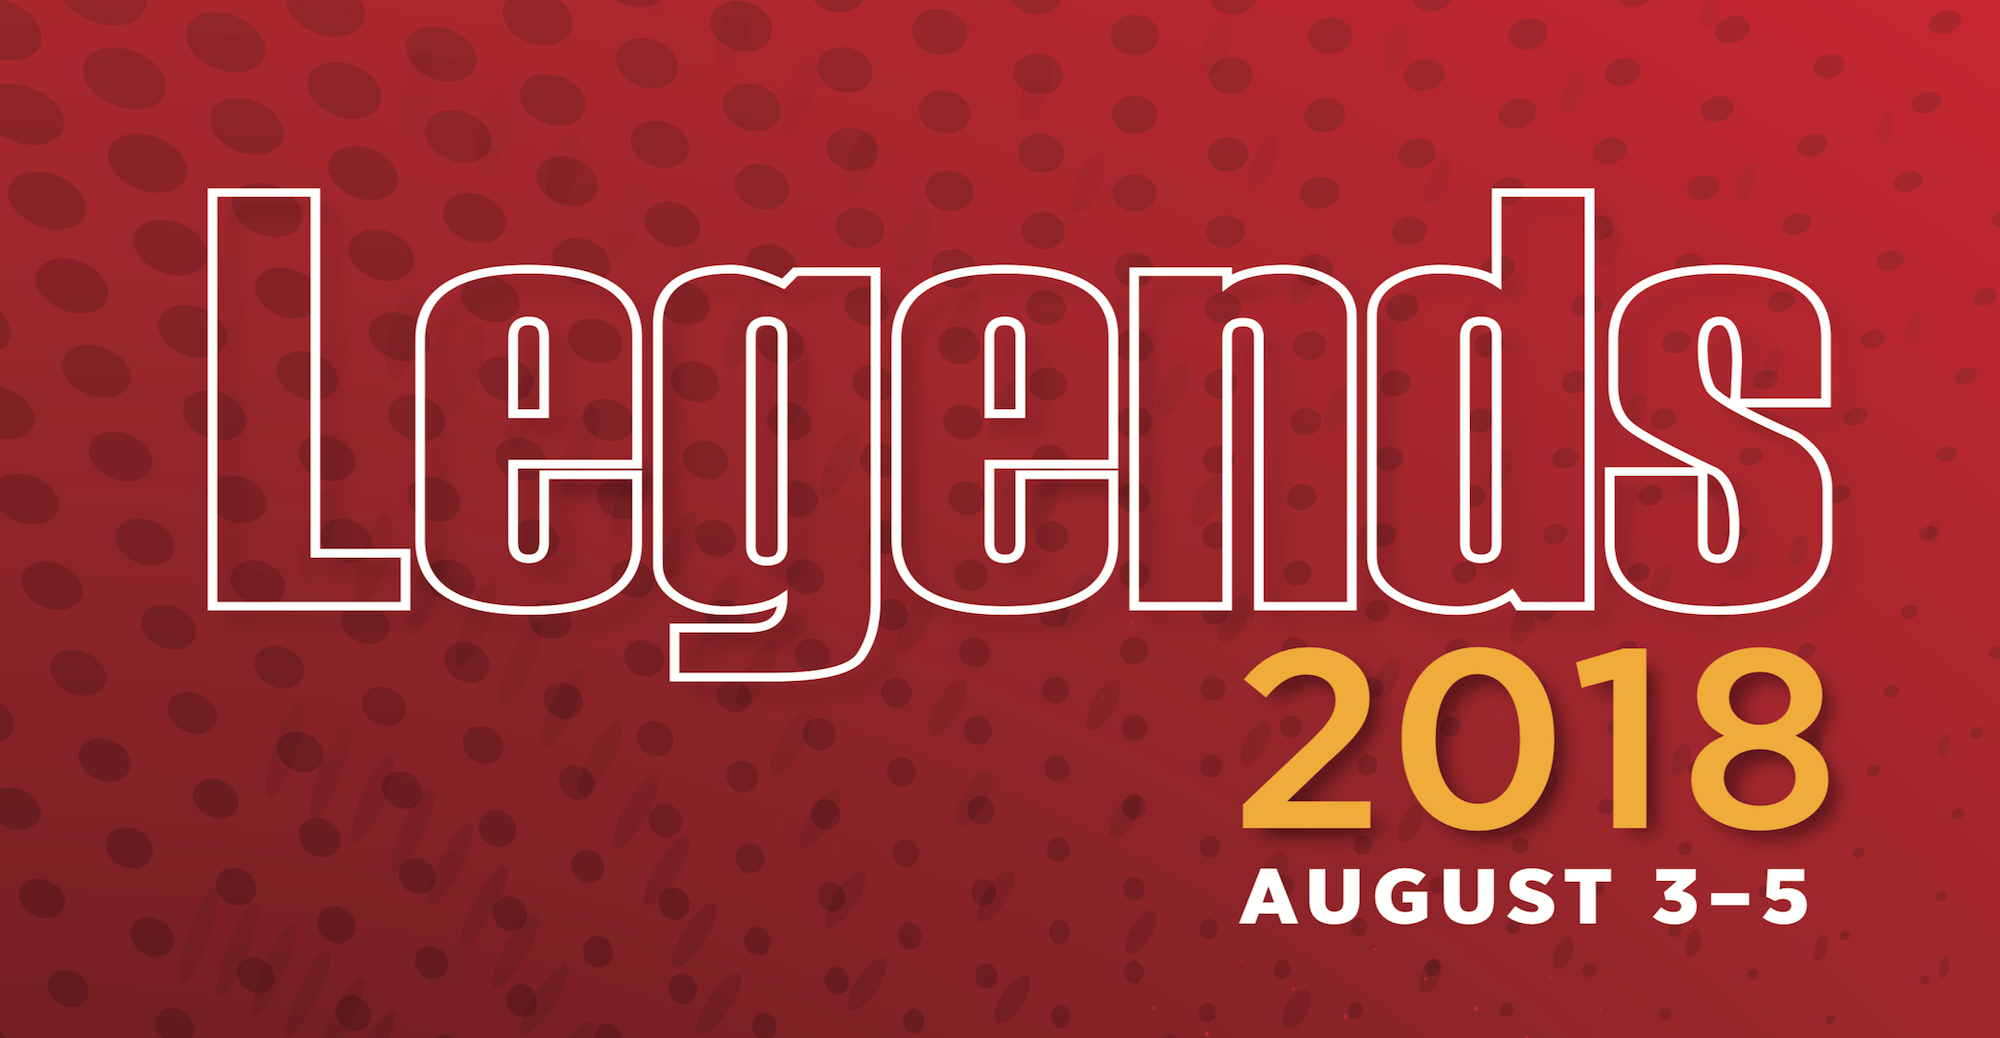 Legends Weekend is Almost Here!